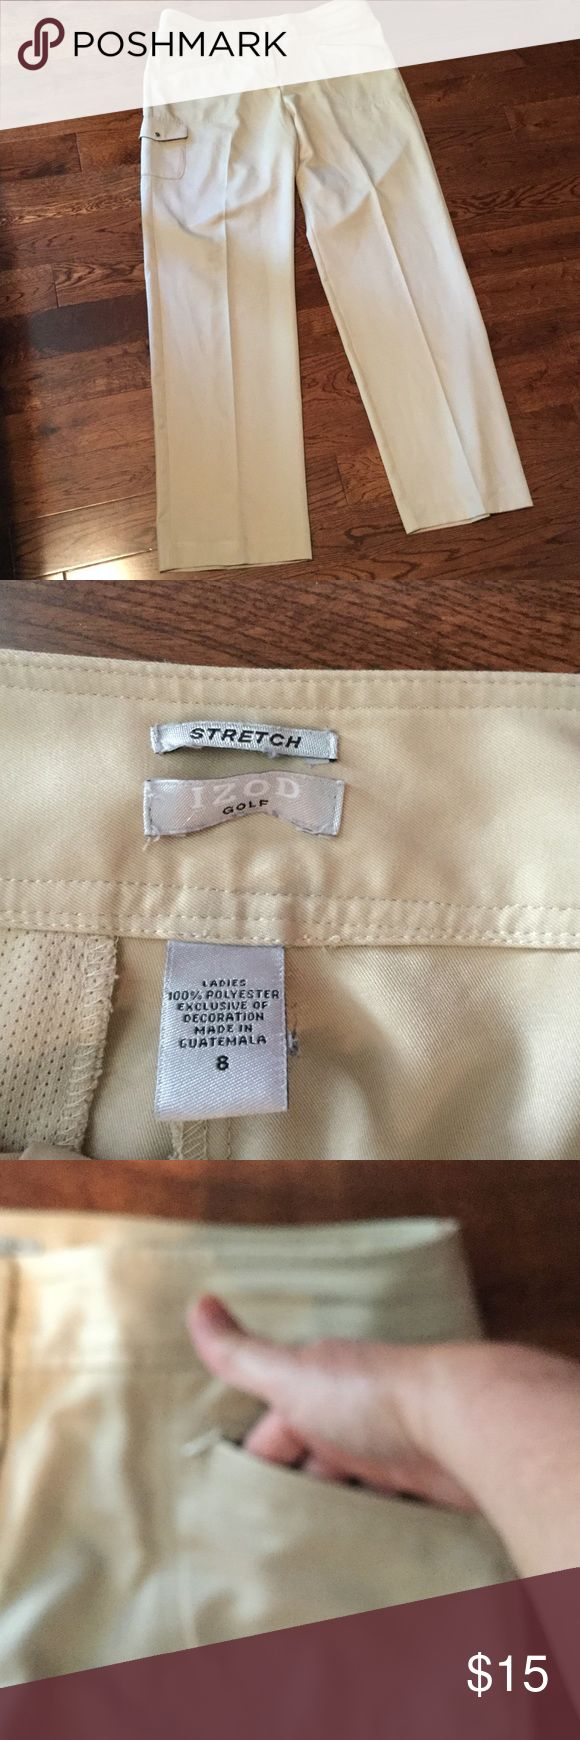 Ladies Izod Golf Pant Ladies Beige Izod Stretch Golf Pant Size 8. 100% Polyester. Worn only once. Zipper, Hidden Hooks and Button Closures. Two Zip-up slit pockets in front and a cargo style pocket on right leg. Right back slit pocket (Still stitched) Izod  Pants Trousers